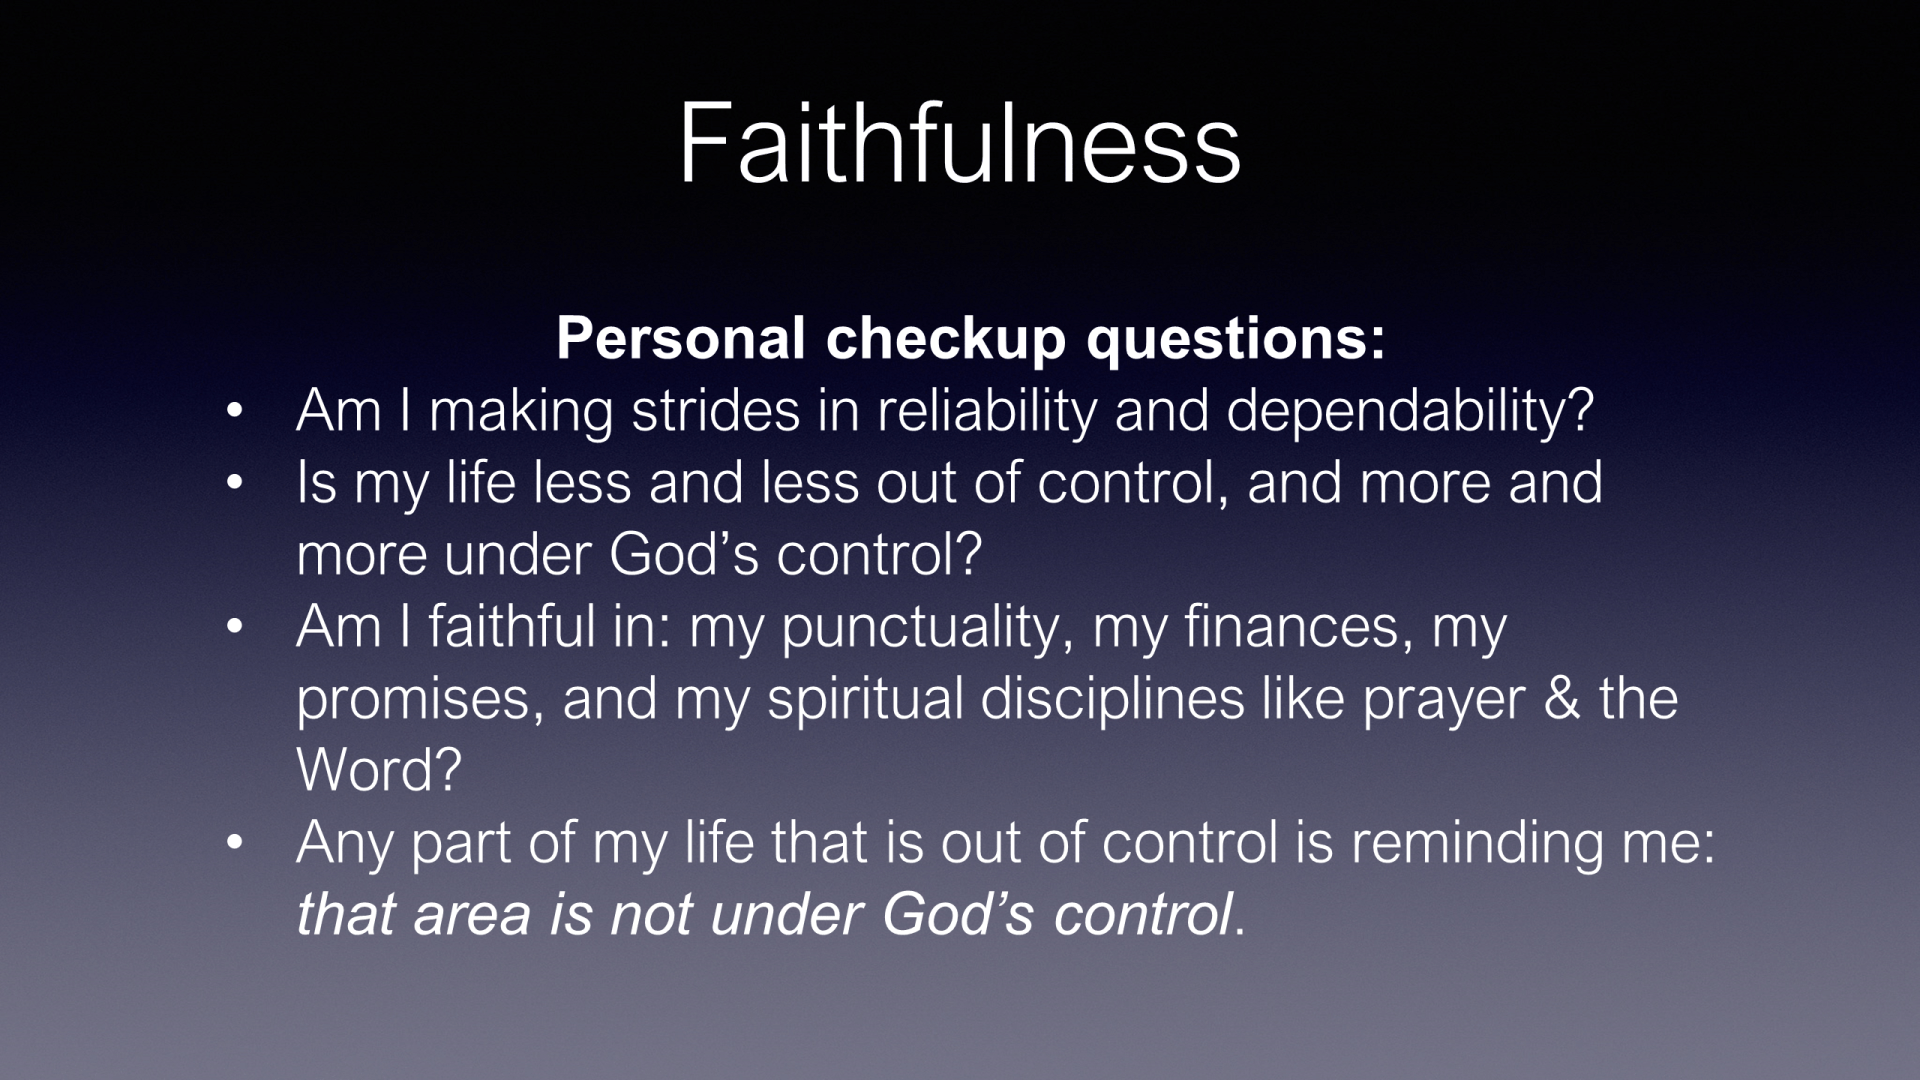 FTF-15 - Face2Face Discipleship - 7 Habits Of Highly Useful Believers (25)